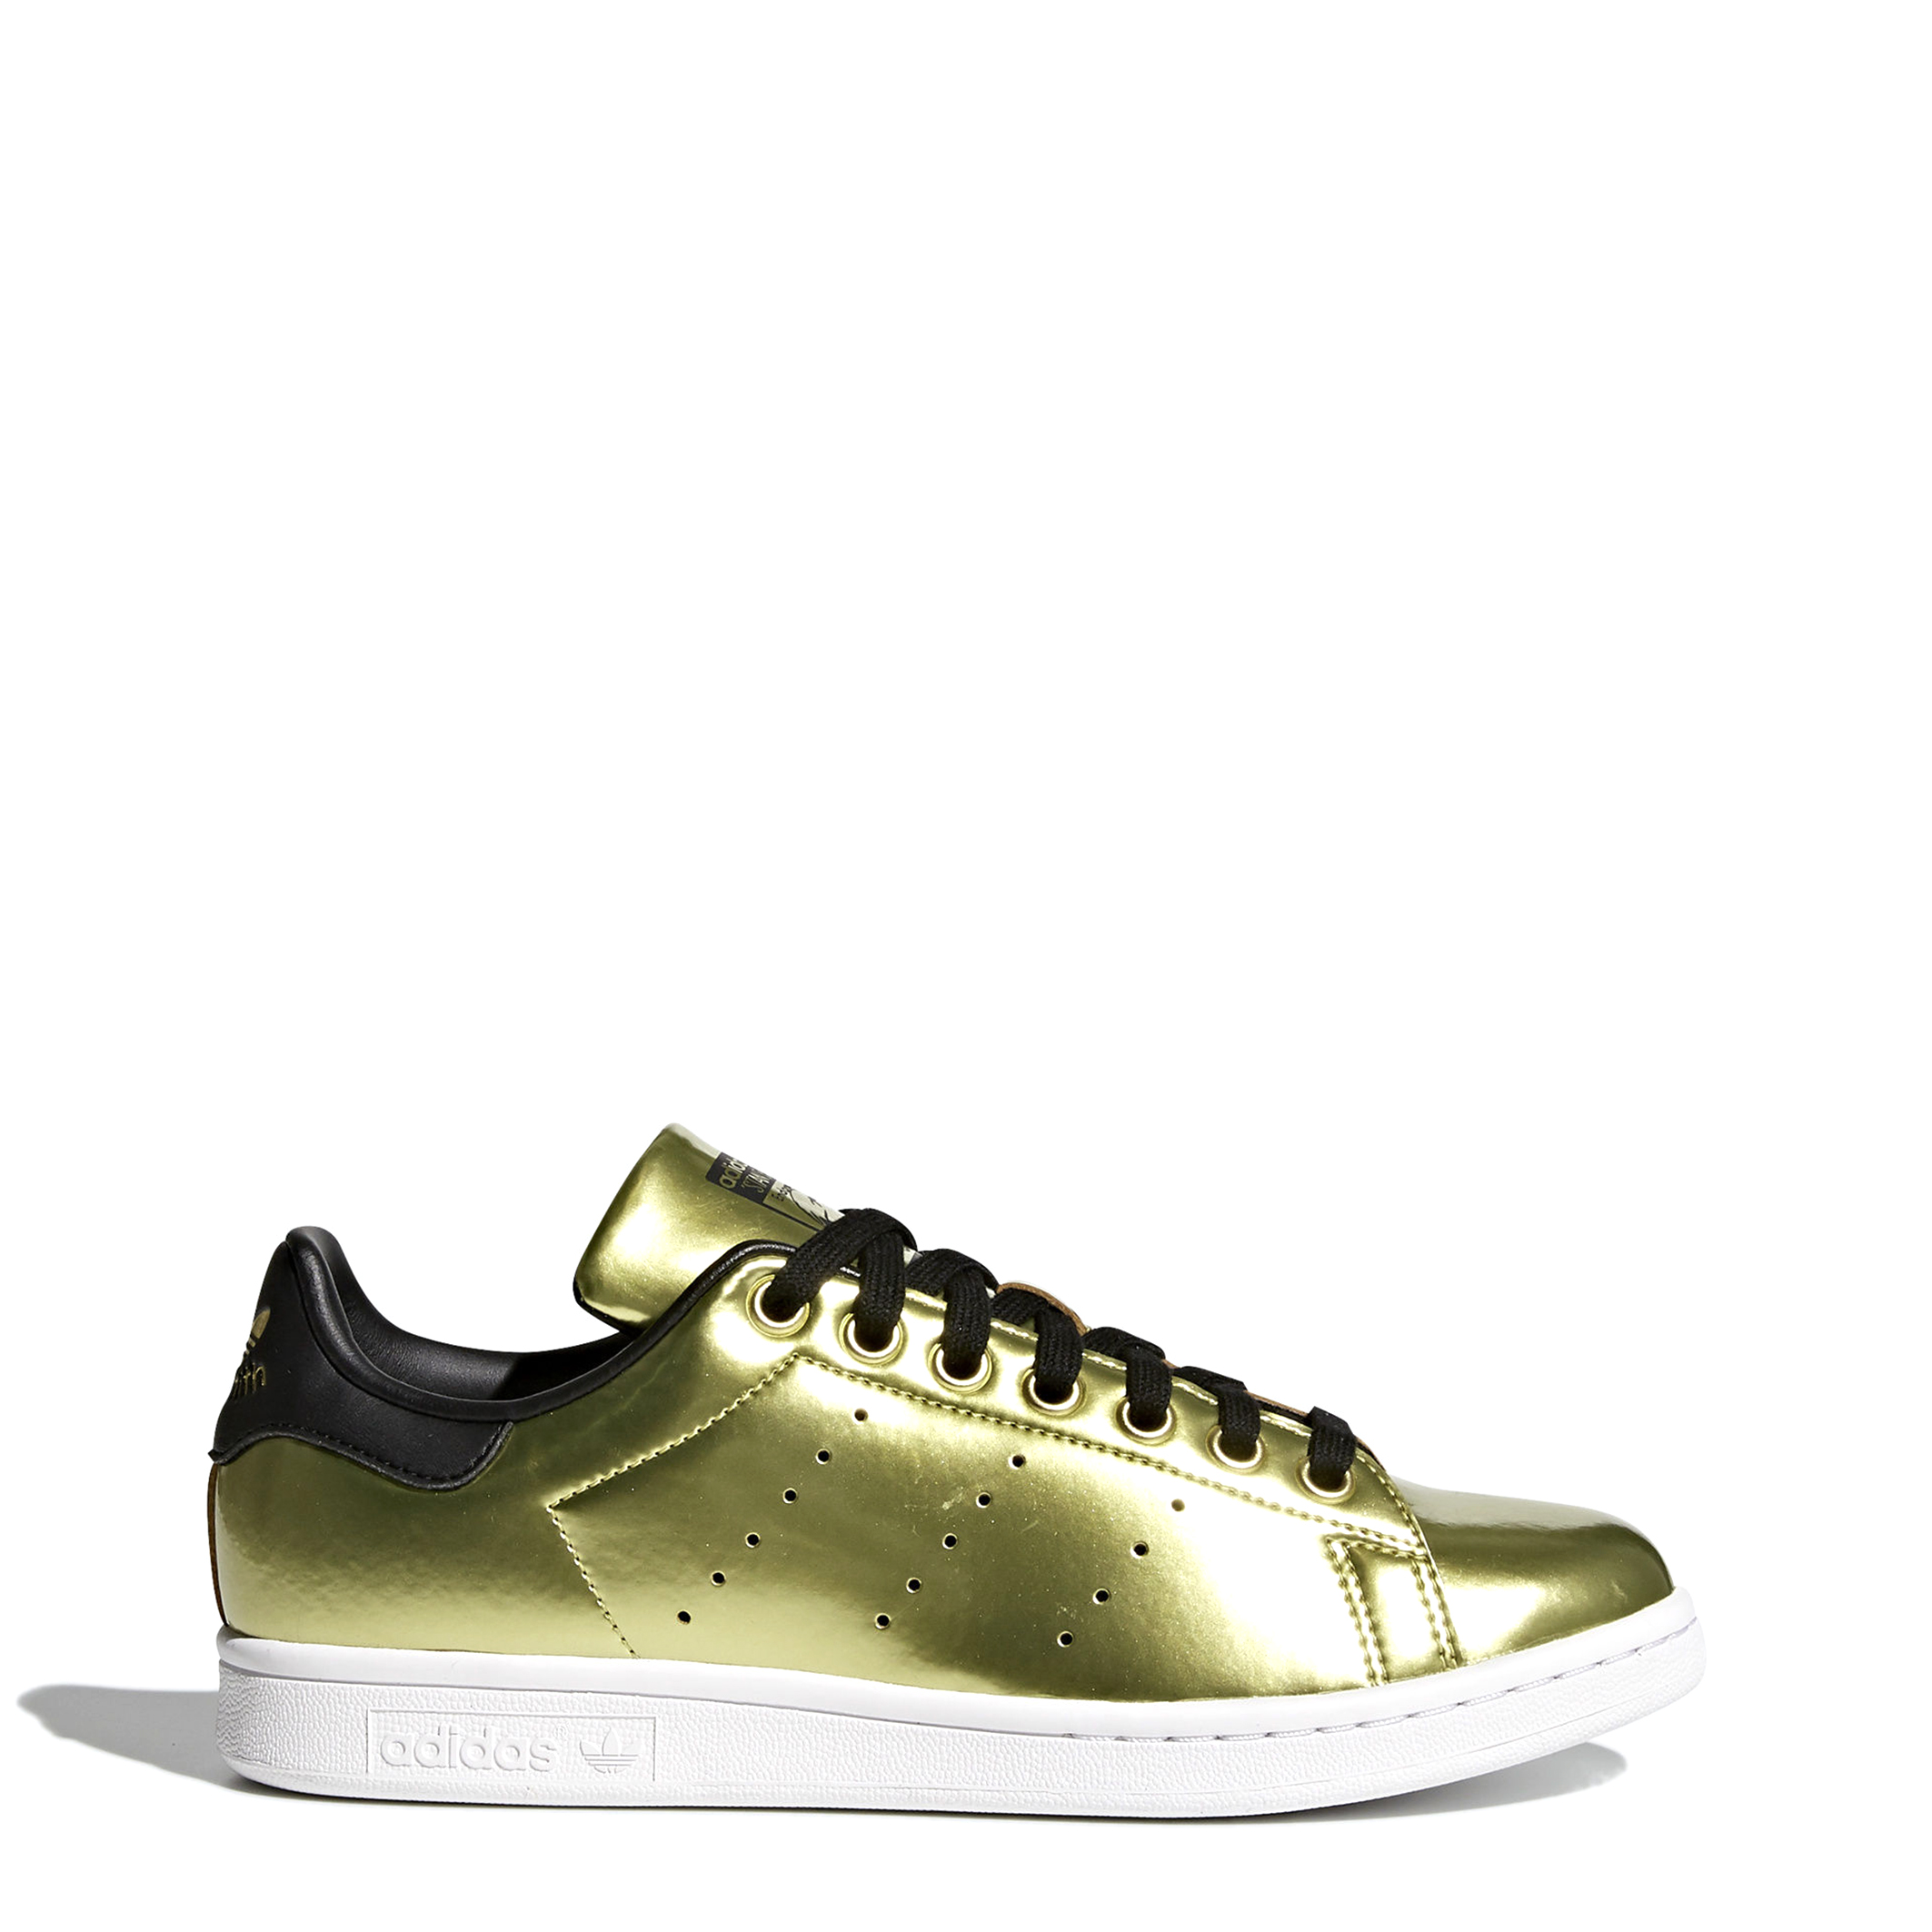 Baskets / Sneakers  Adidas StanSmith yellow